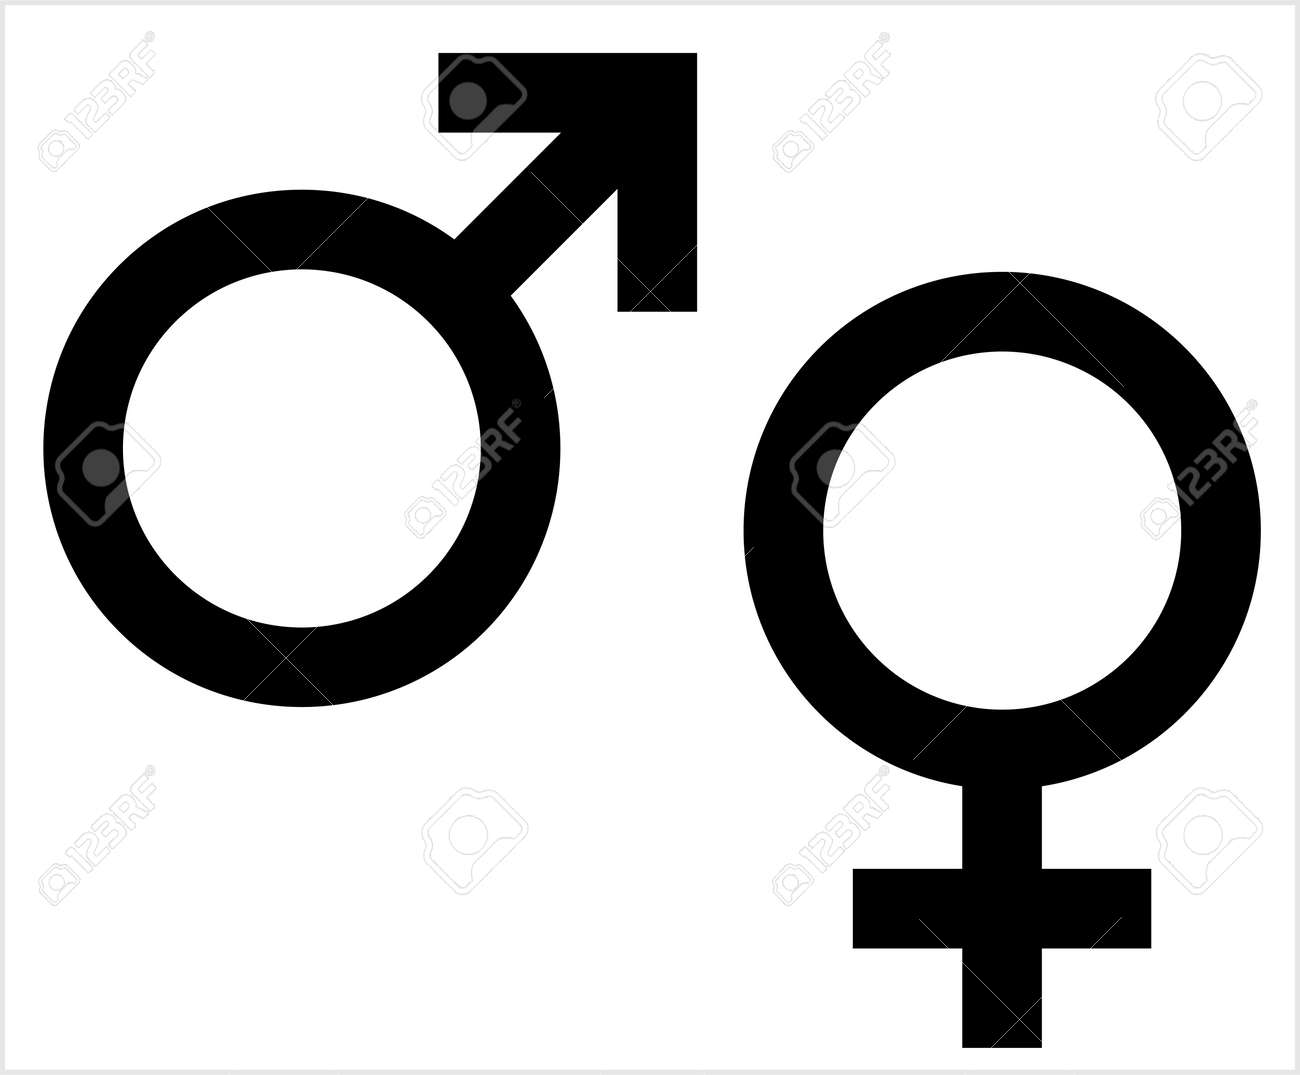 gender symbol icon male female biological sex symbol icon vector royalty free cliparts vectors and stock illustration image 127713563 123rf com